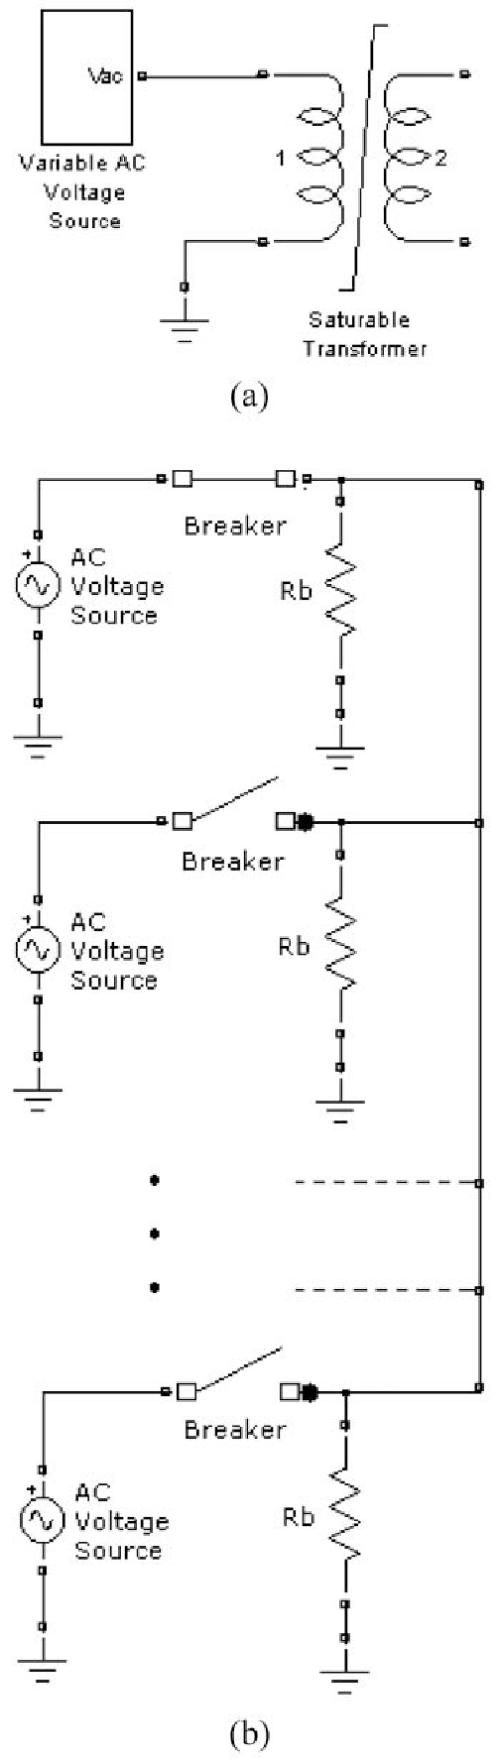 small resolution of  a new variable ac voltage source providing input to transformer model and